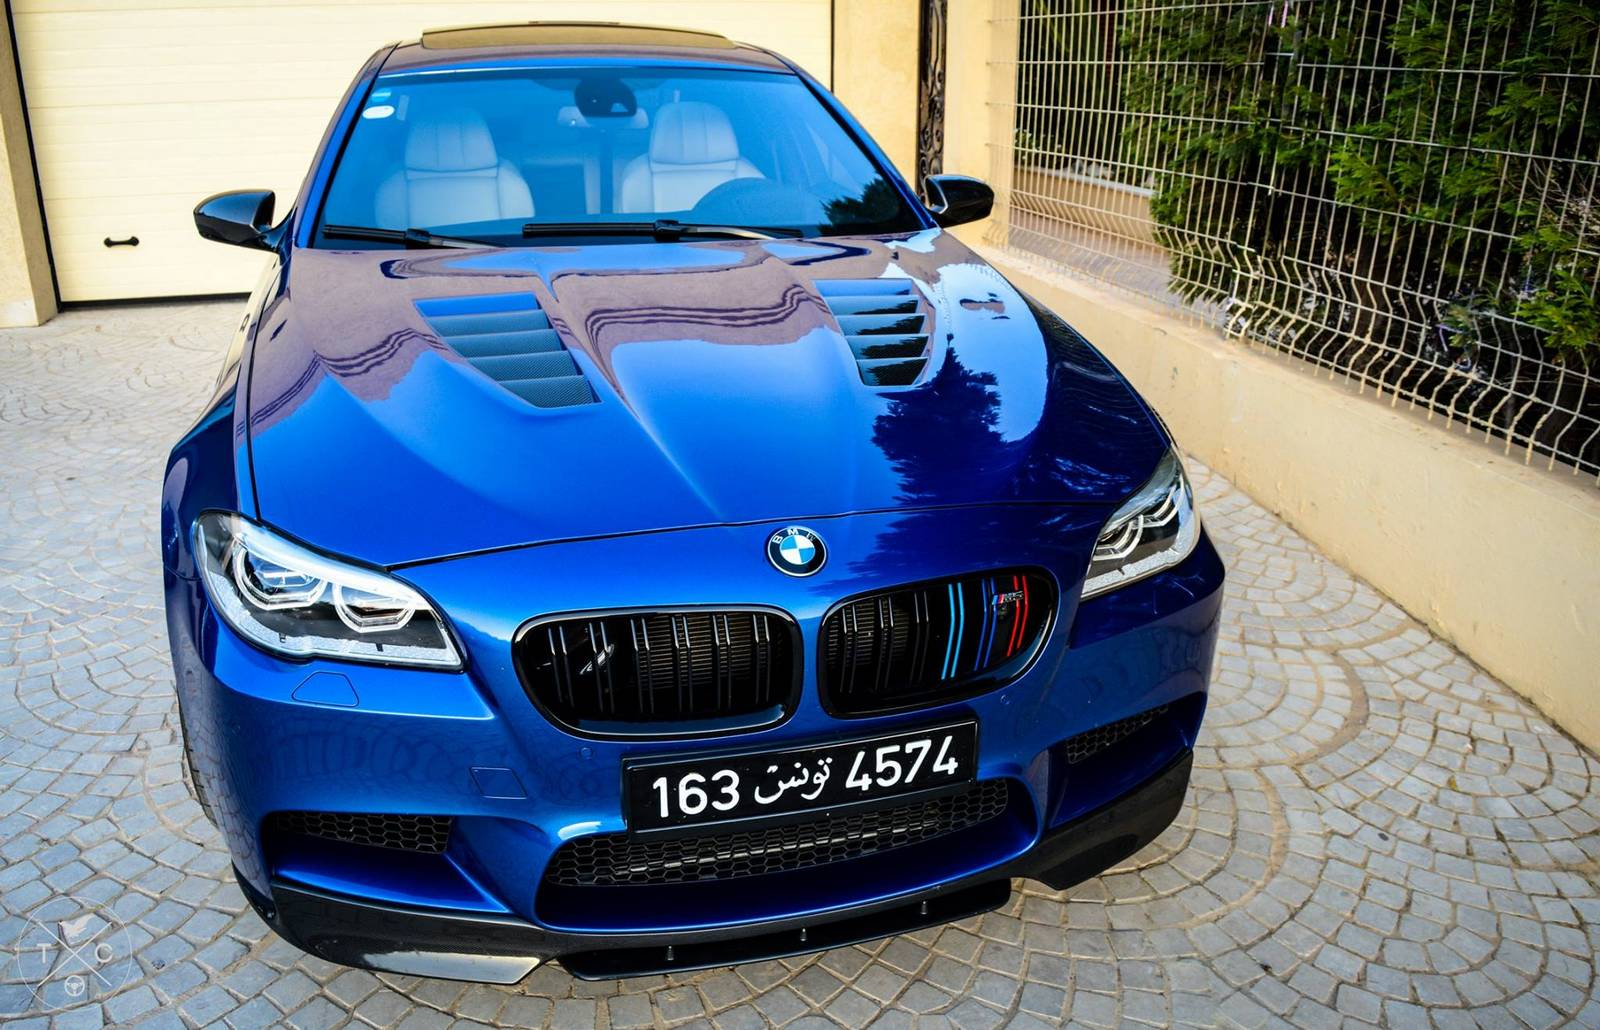 740hp Manhart Bmw F10 M5 Most Powerful Bmw In Tunisia